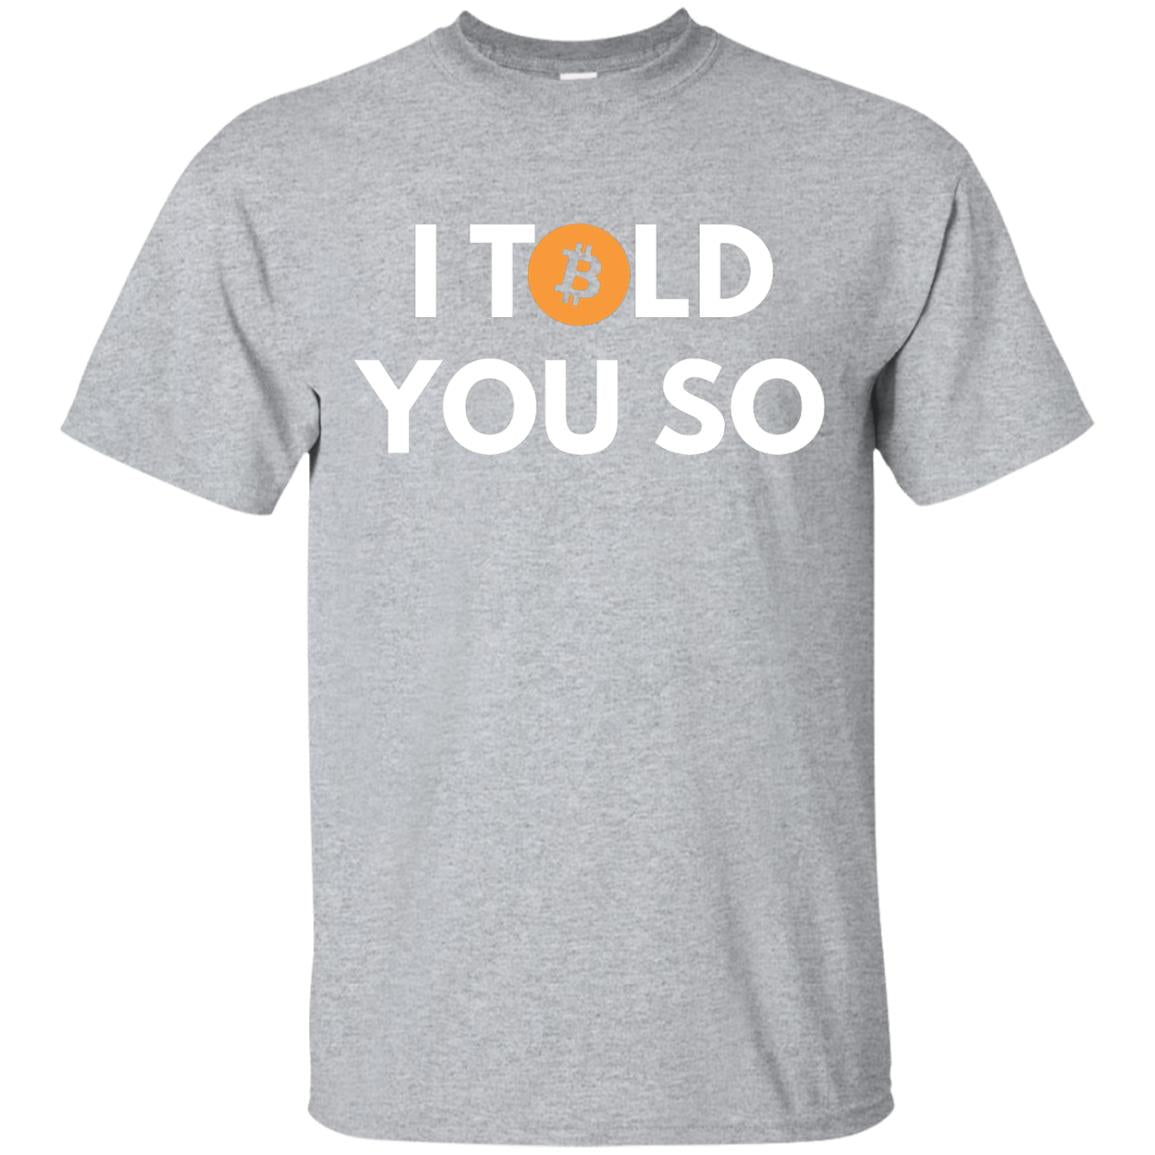 Bitcoin T-shirt - I Told You So - Cool for Bitcoin Owners 99promocode